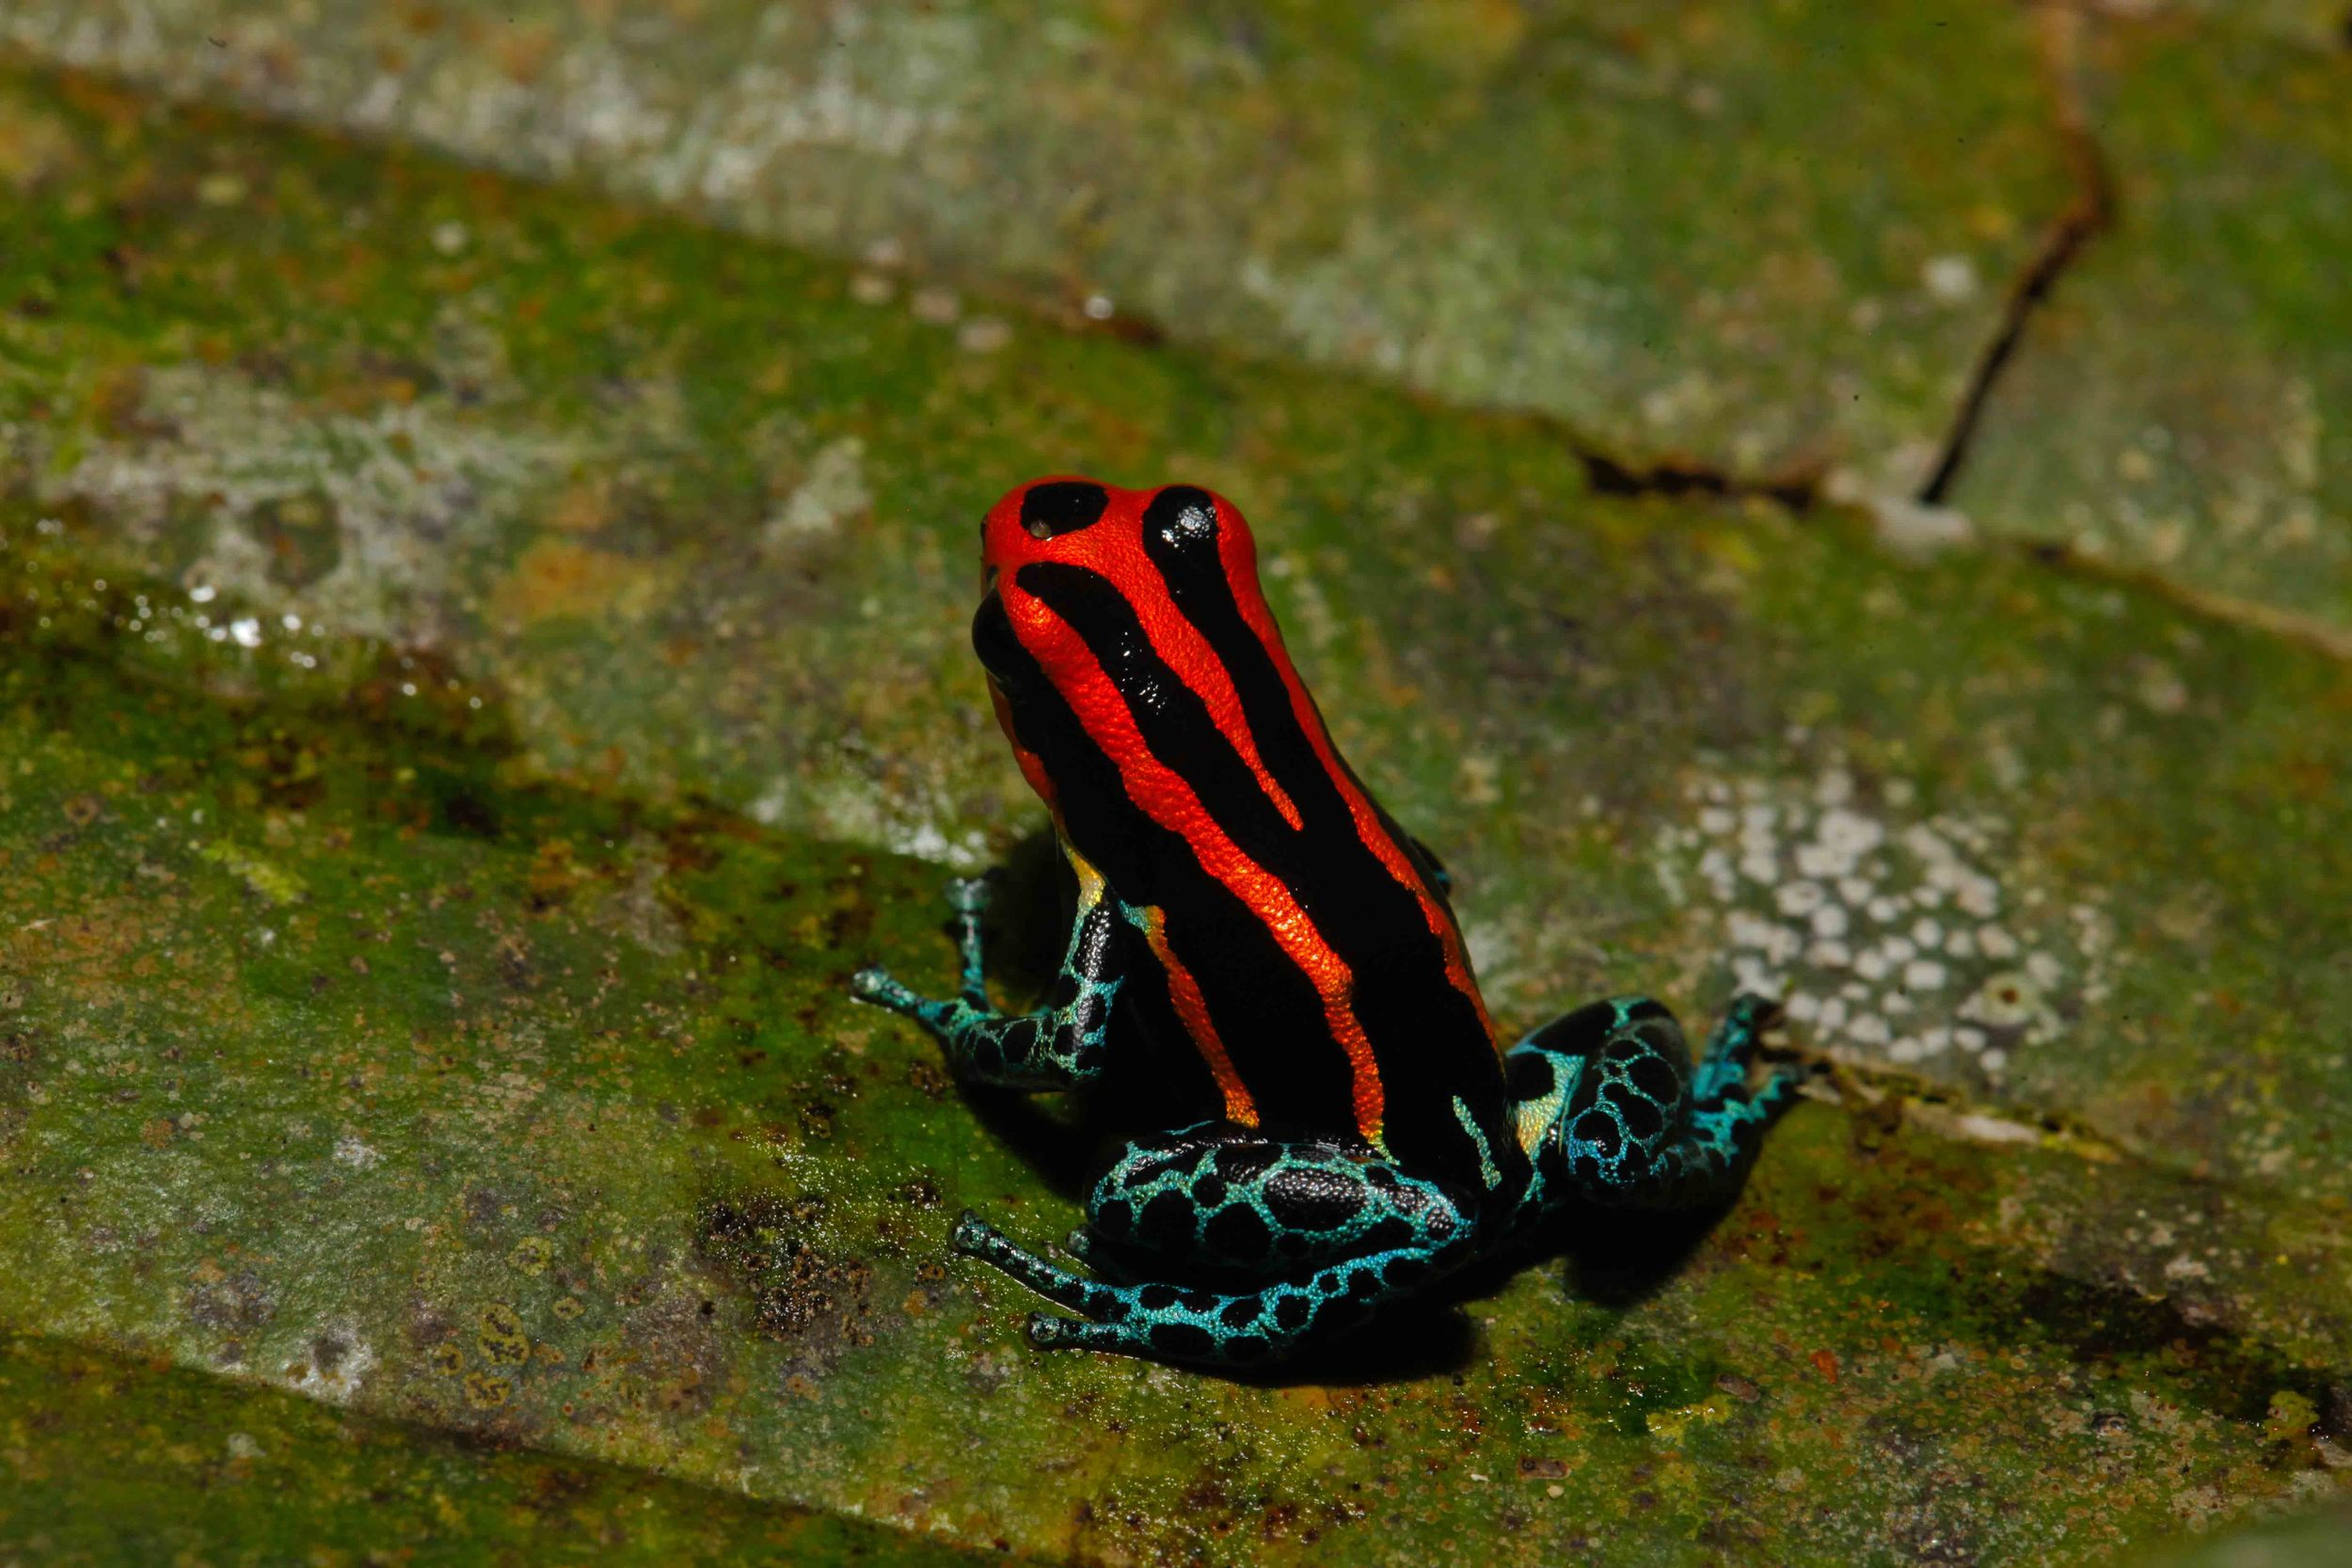 Ranitomeya amazonica (Photo by Matt Cage)